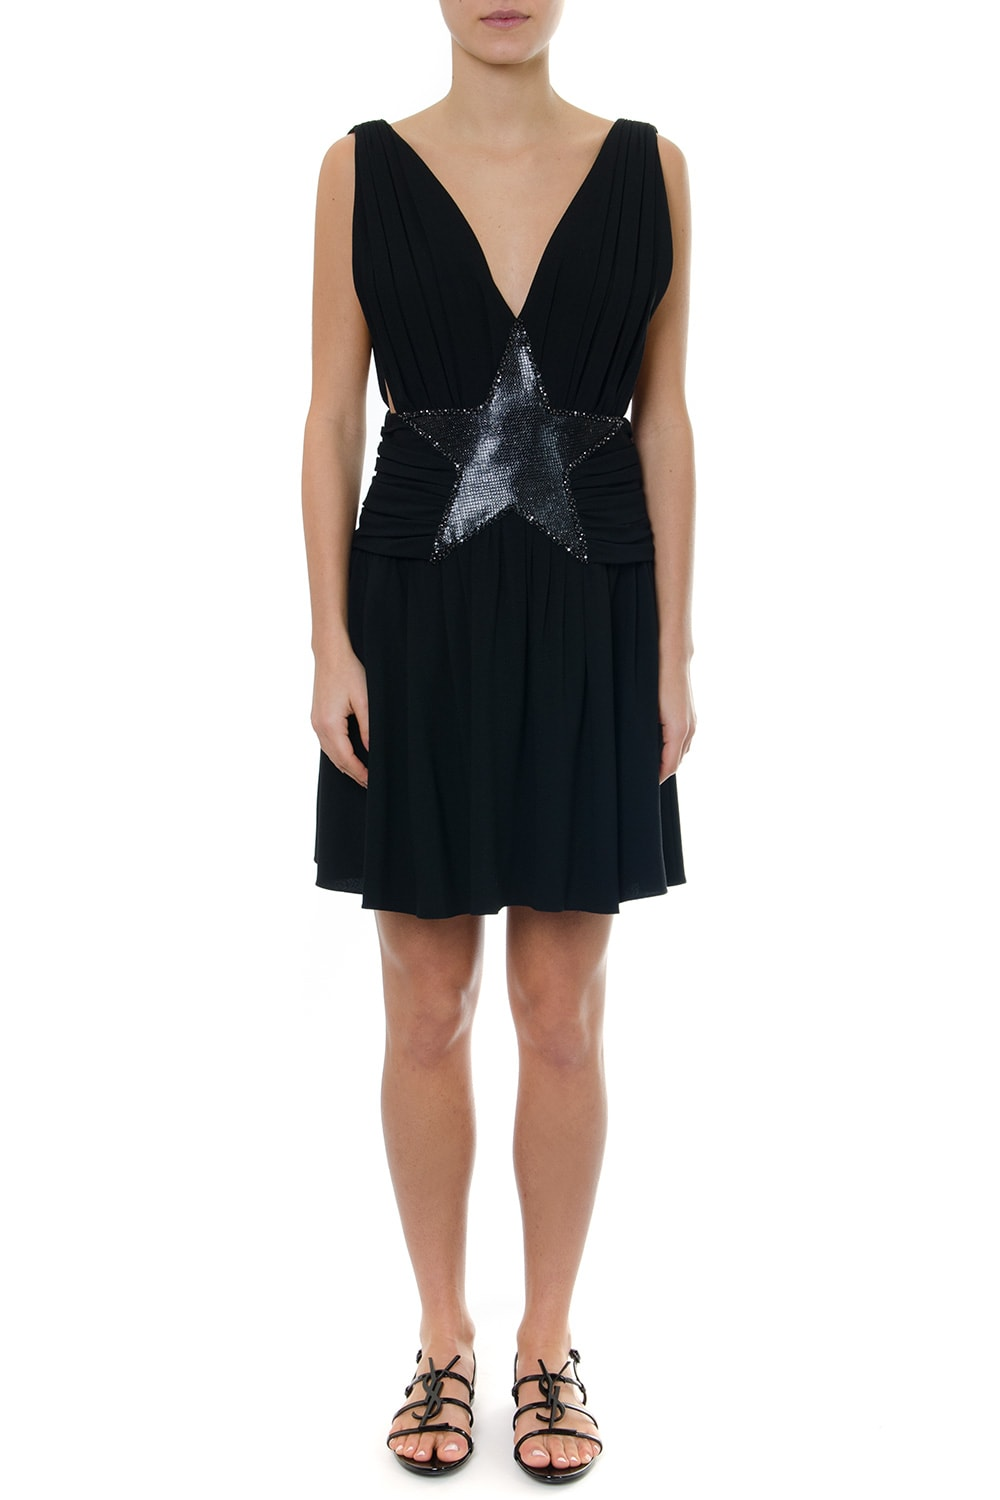 Saint Laurent Black Dress In Sablé With Mesh Star